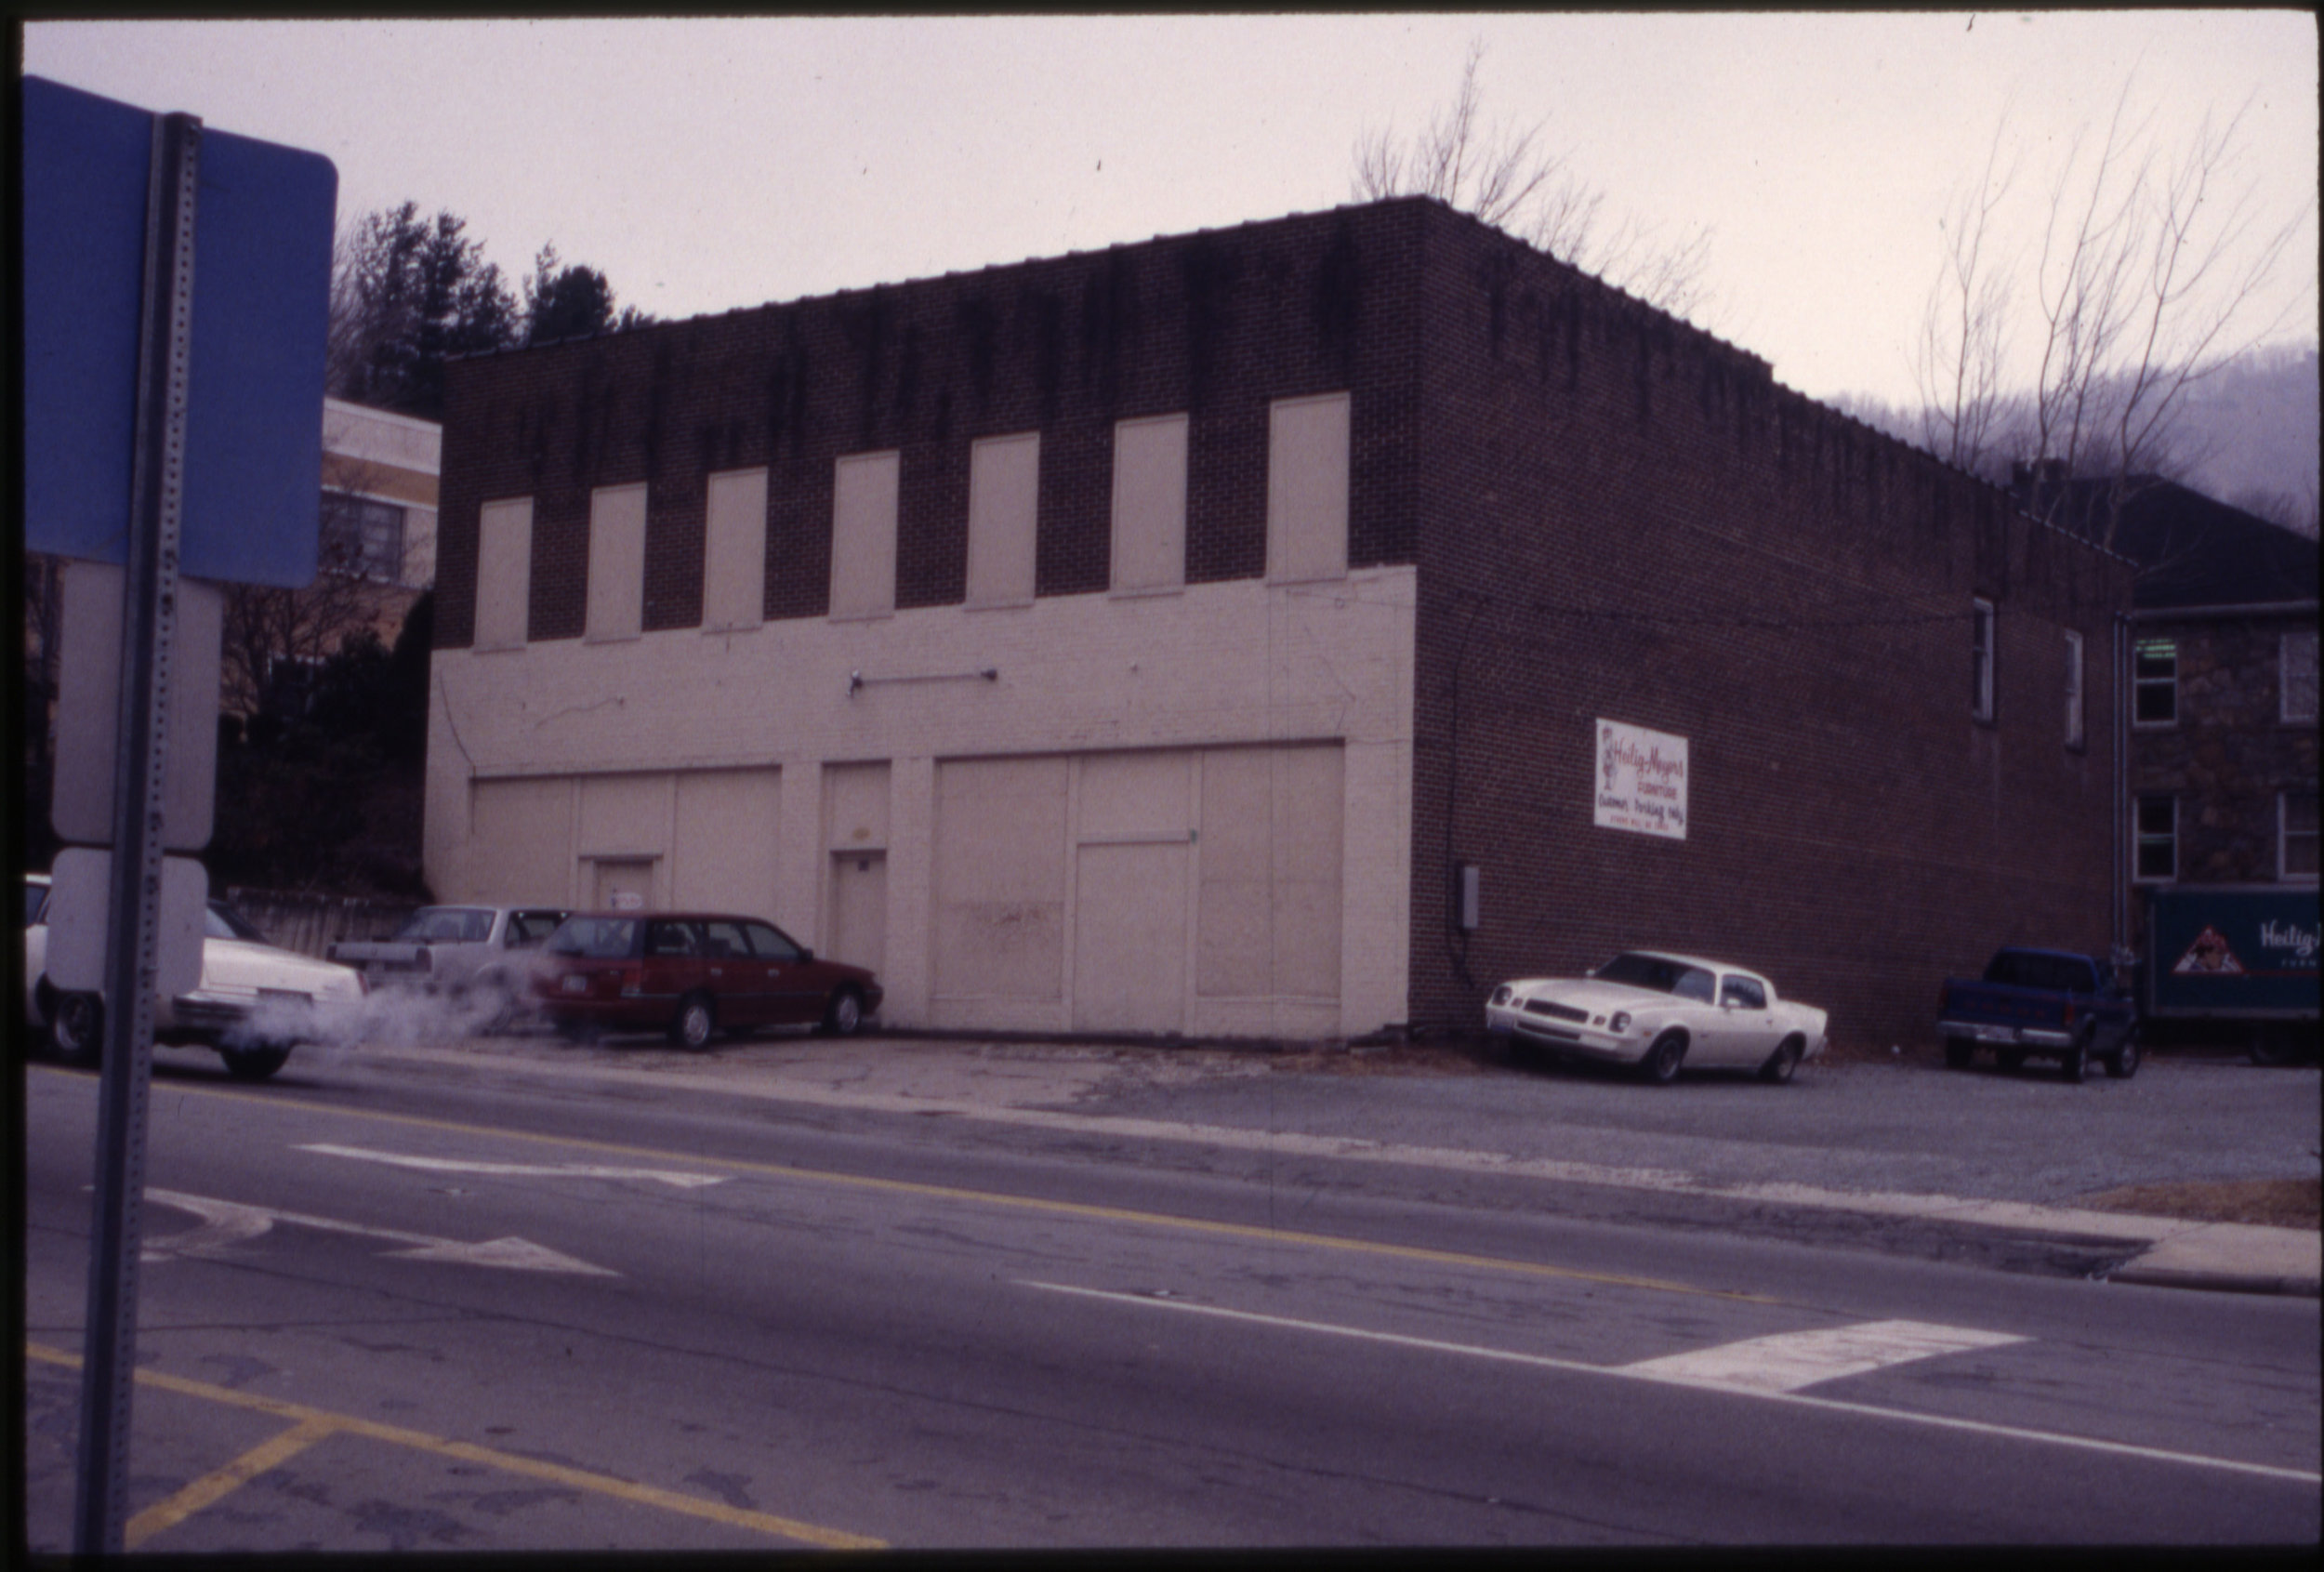 The former W. R. Winkler Warehouse/Masonic Hall (1949) is seen in this image as the Heilig-Meyers Warehouse during the 1990s. Most folks might think this building is gone, but in fact its walls served as the structure for the present Watauga County Administration Building. Image courtesy of the Downtown Boone Development Association Collection (Dow-Boo-1-007), Digital Watauga Project.